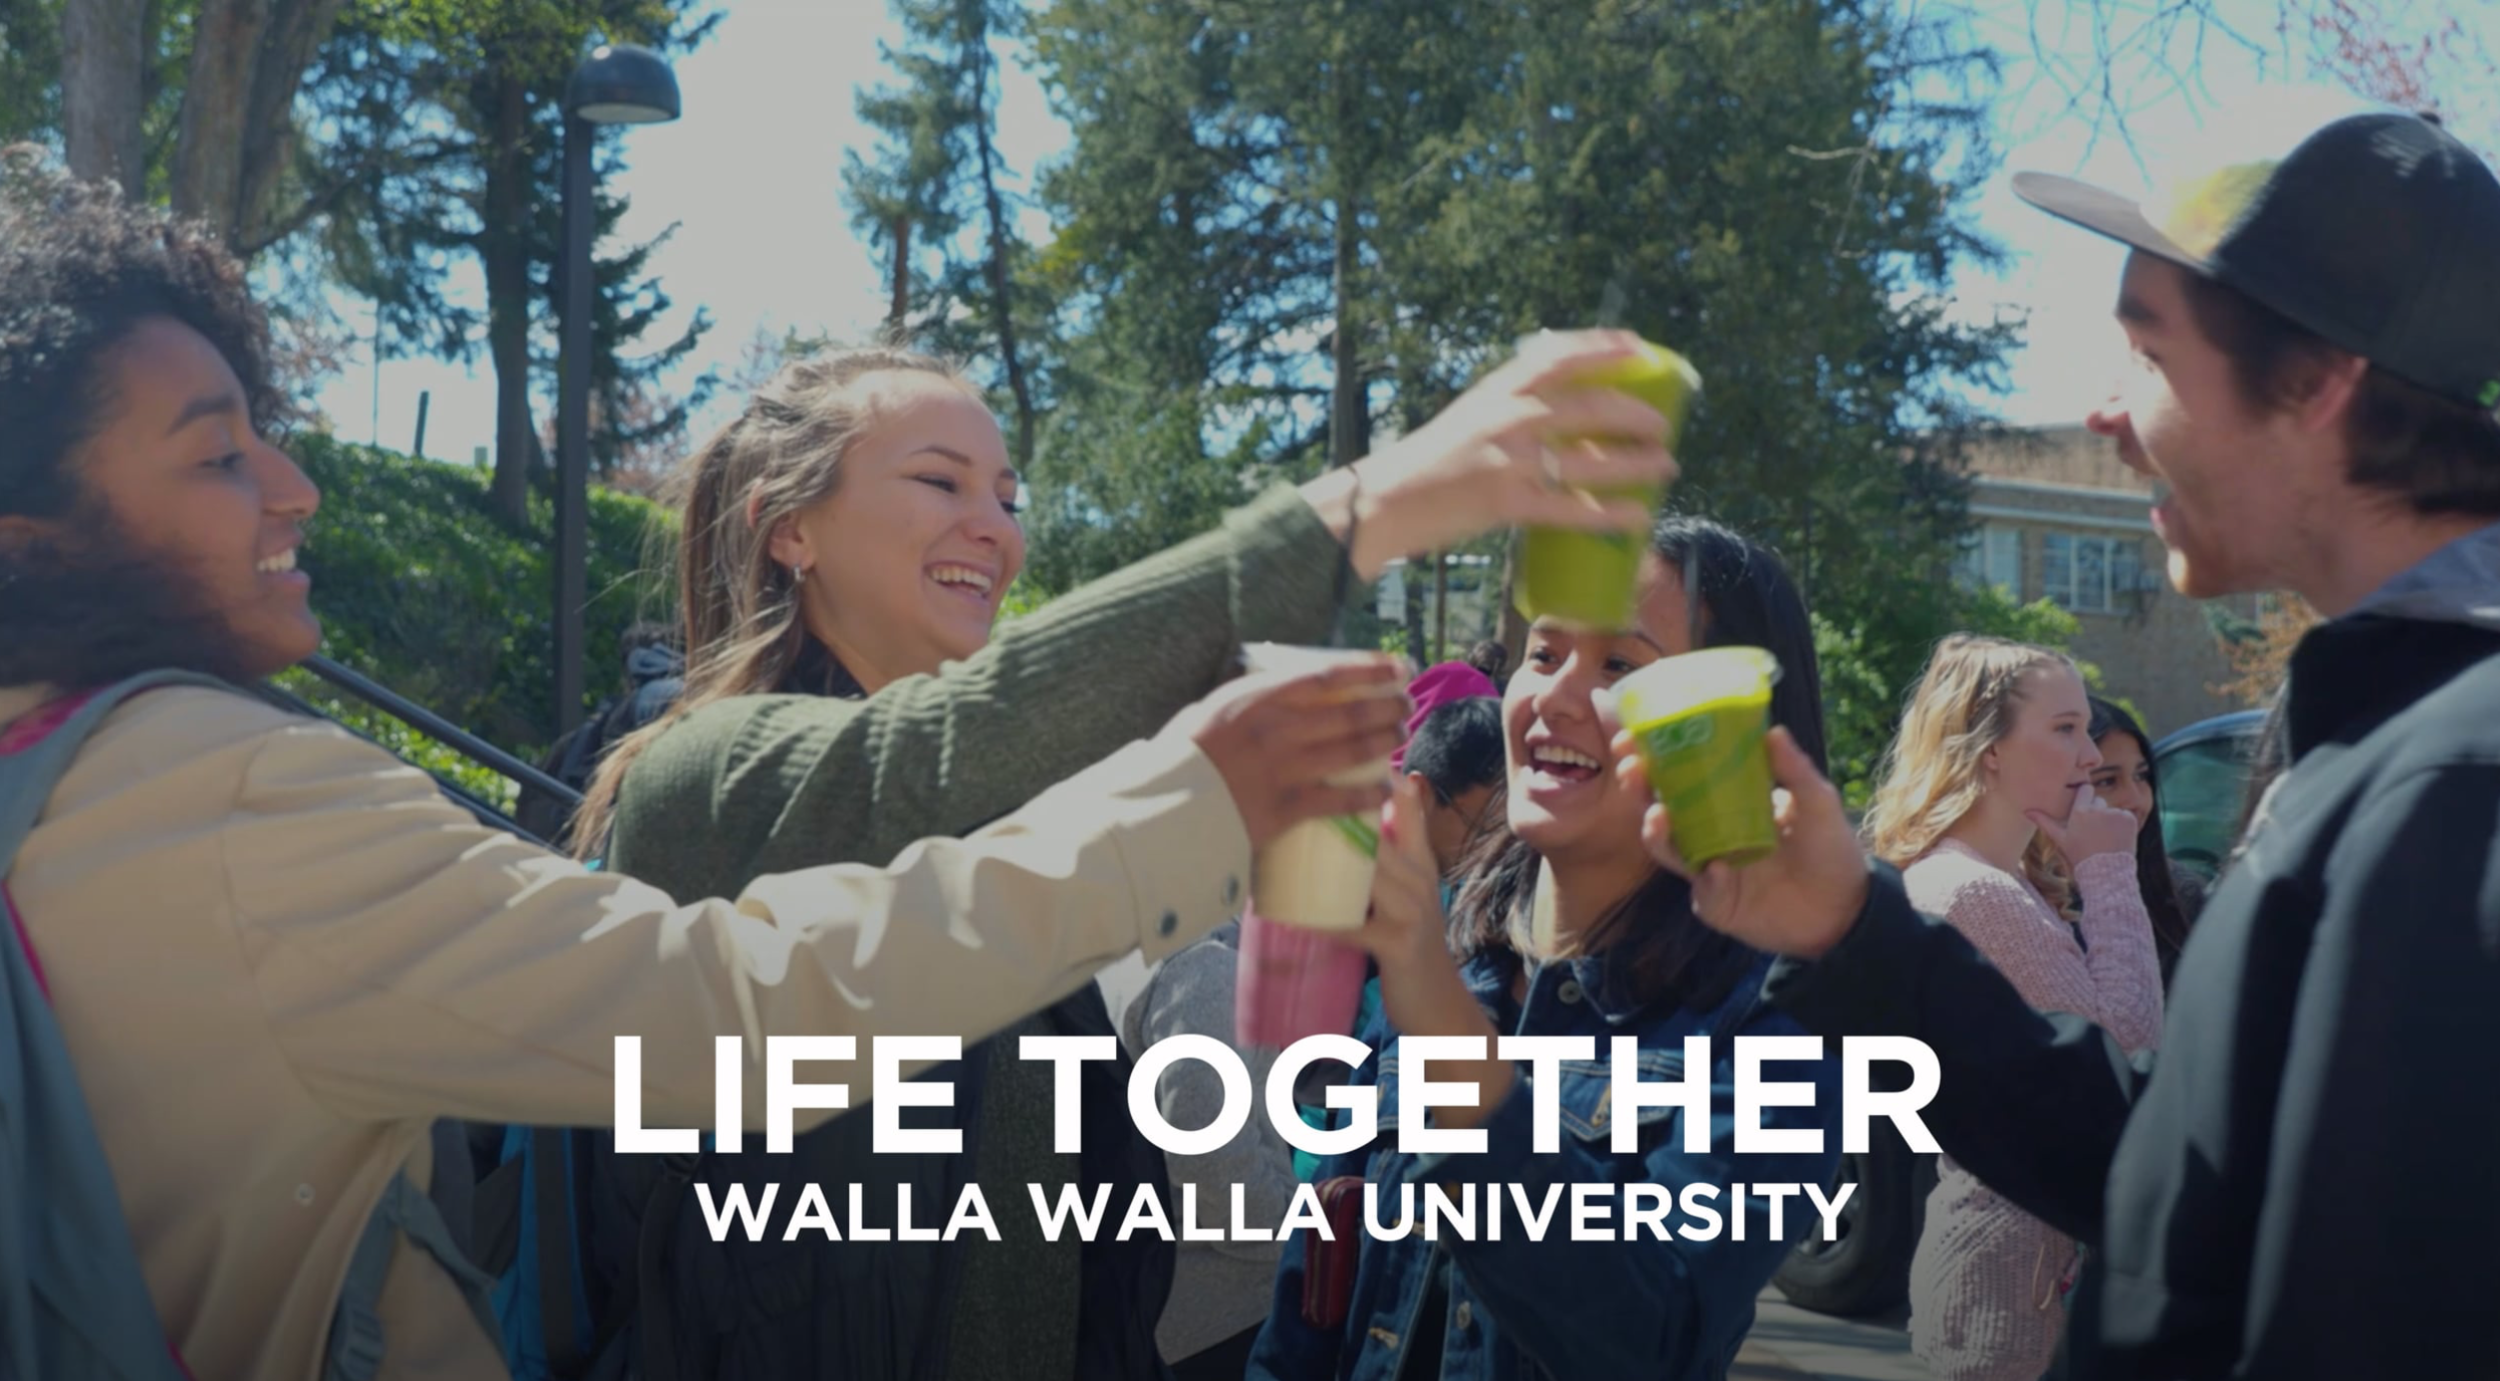 Video: Short-film – Honorable Mention    Walla Walla University | Life Together   Christian Bell, DeLona Bell, Miles Eric Bell, Jodi Wagner, Chris Drake, and Emily Muthersbaugh along with many, many others across our campus.  WALLA WALLA UNIVERSITY